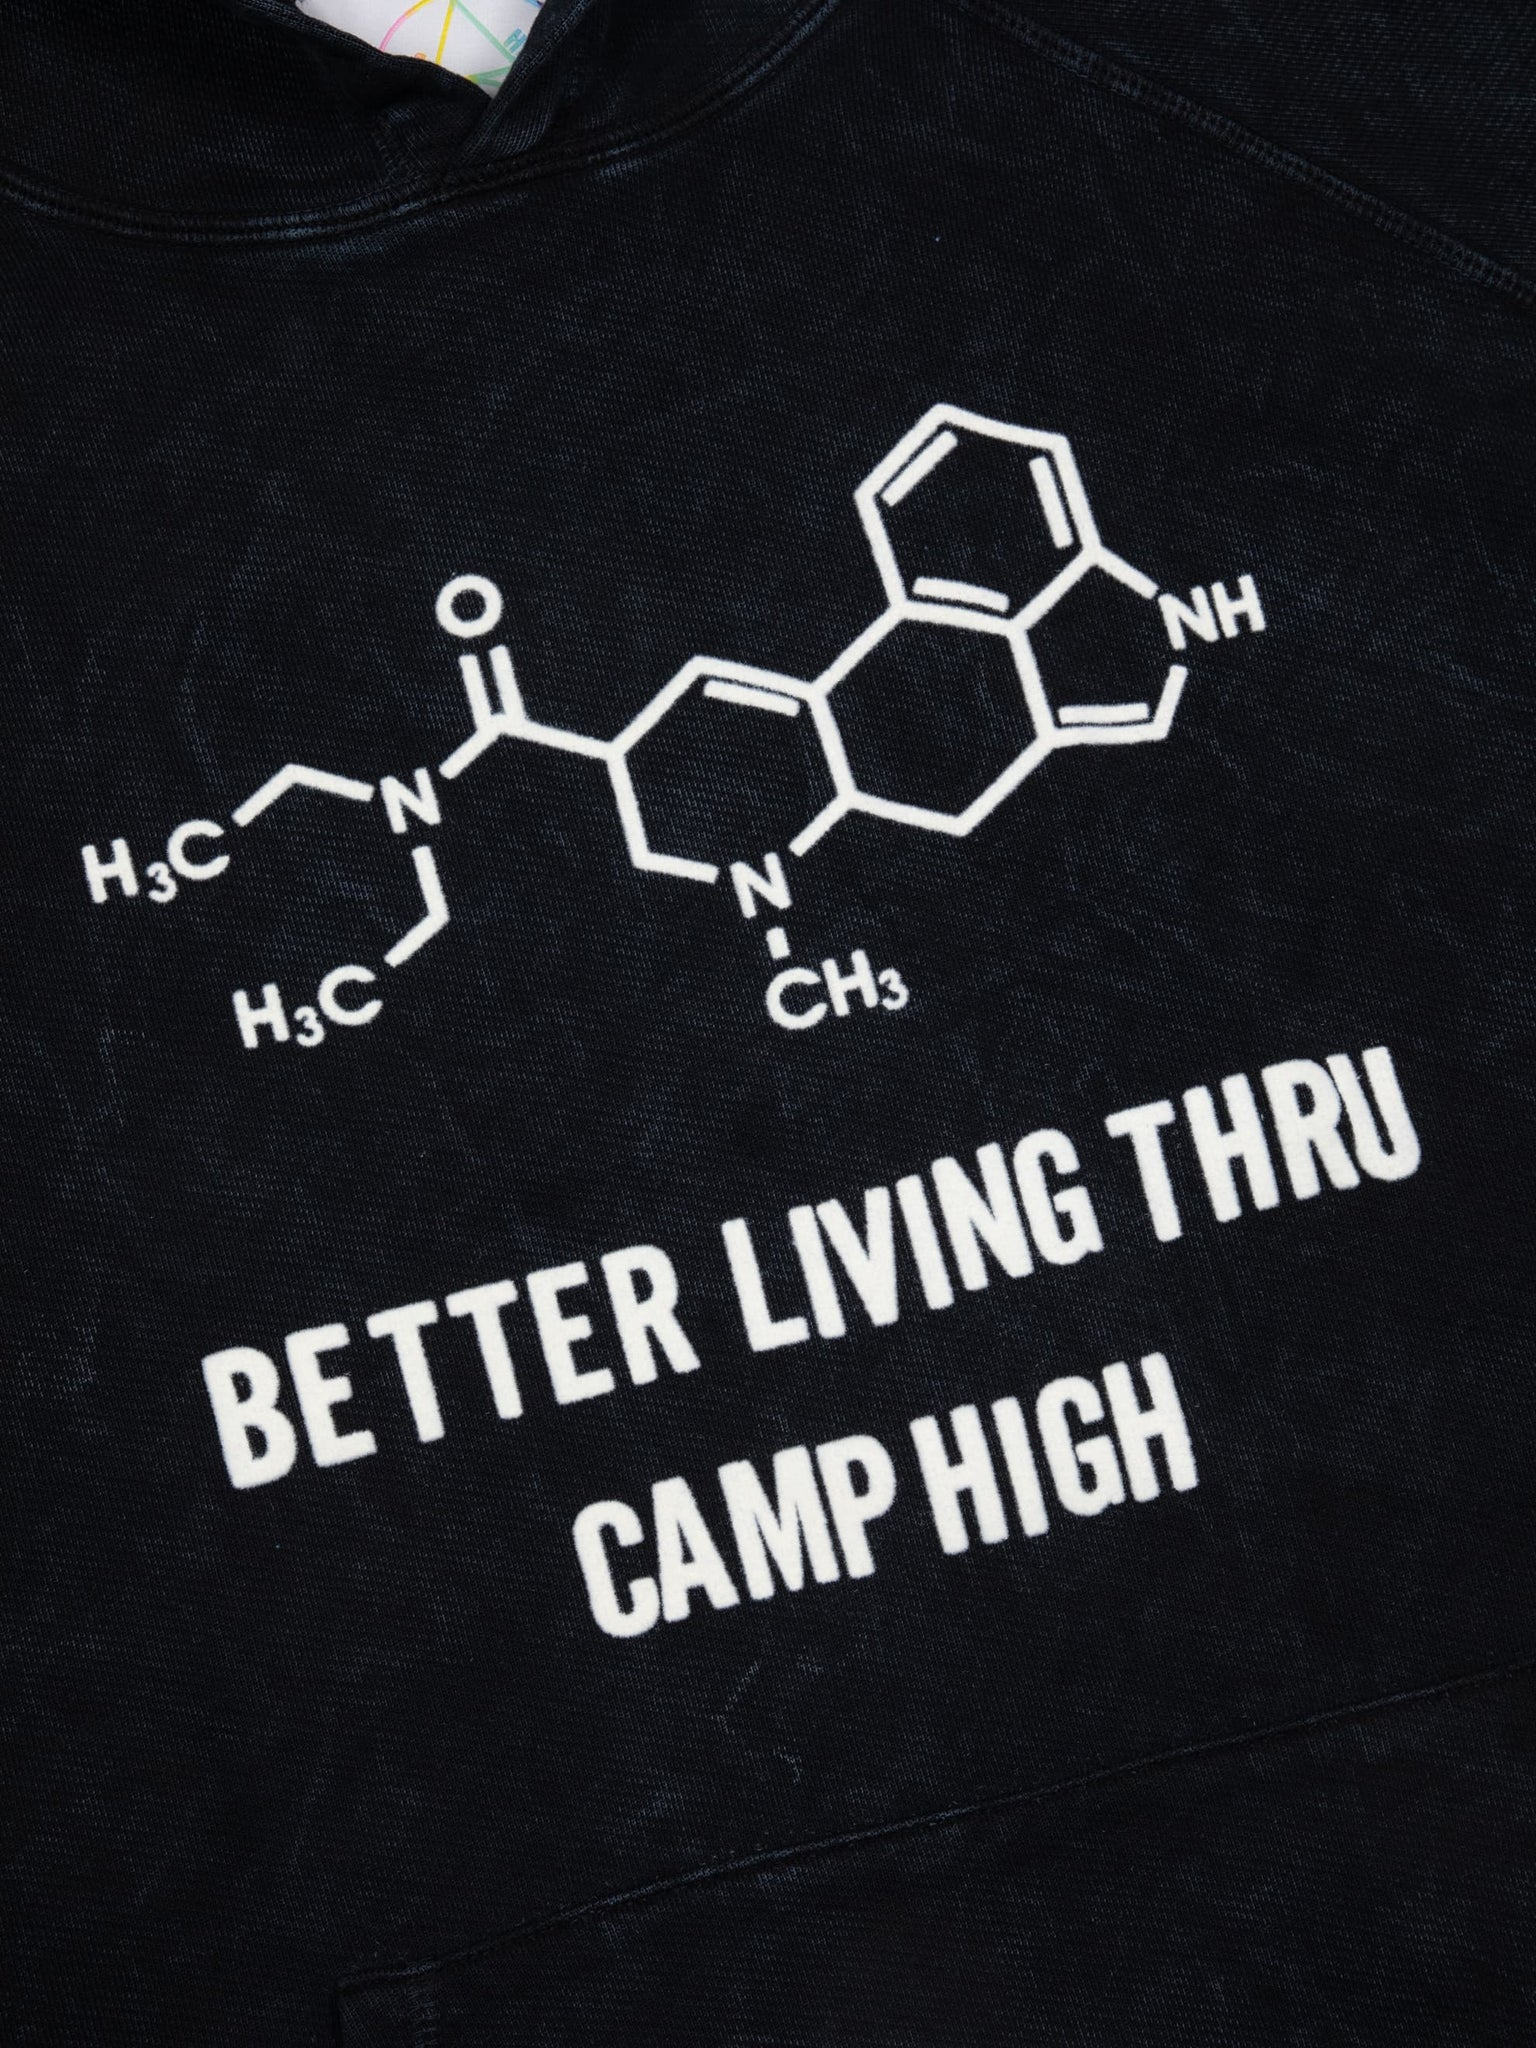 Camp High Better Living Thru Camp High Hoody